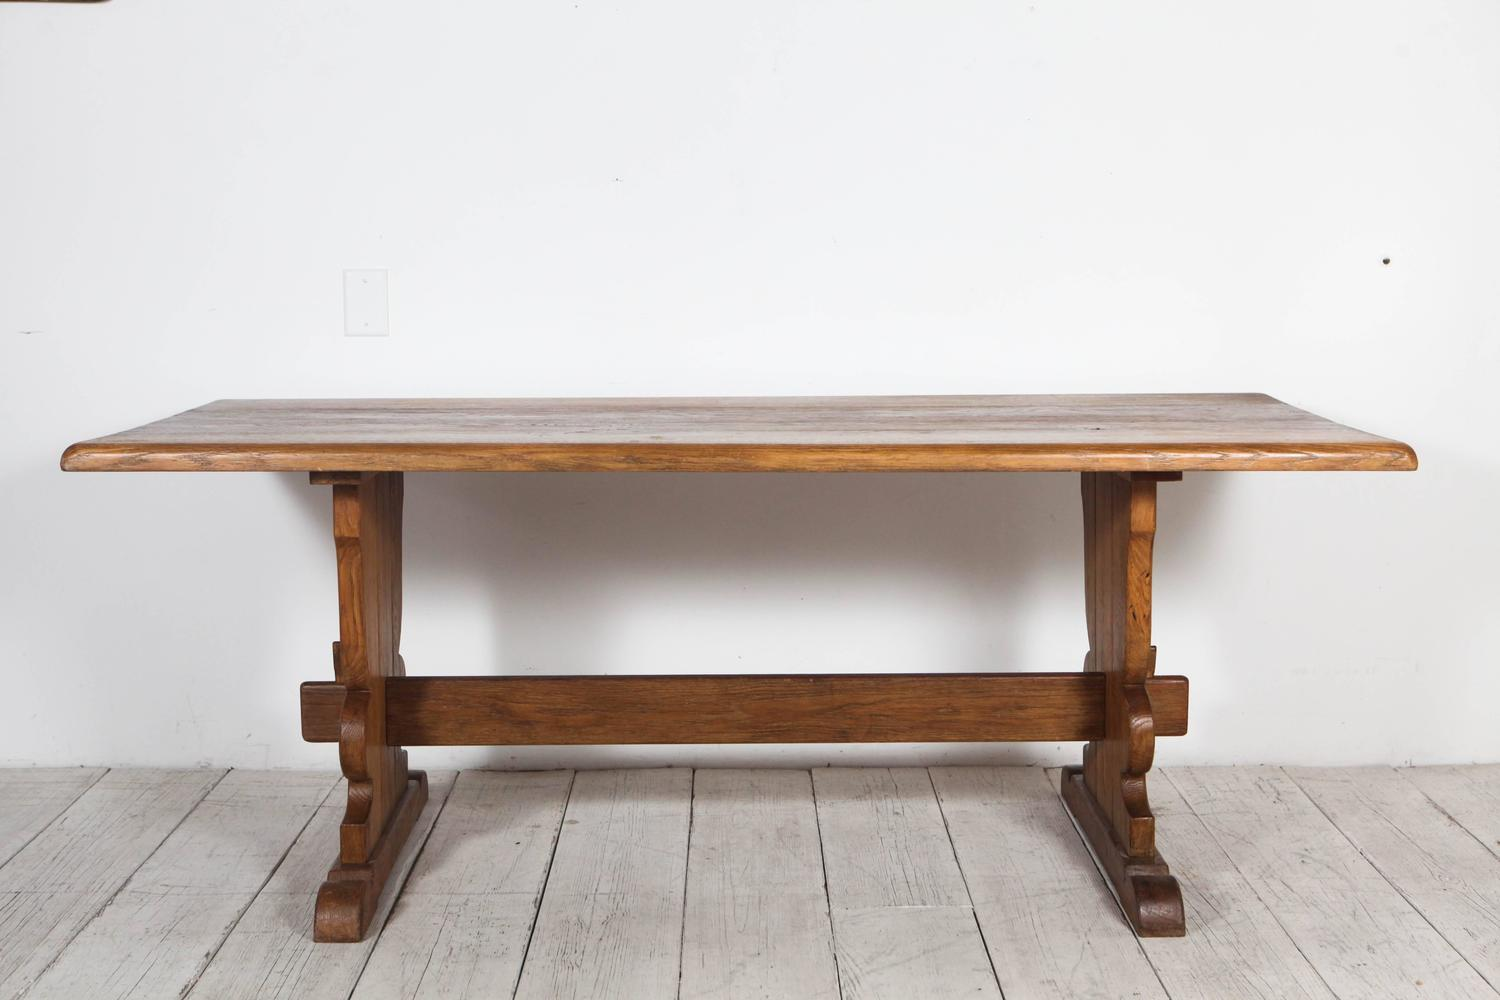 Vintage Rectangular Wood Trestle Farmhouse Table at 1stdibs